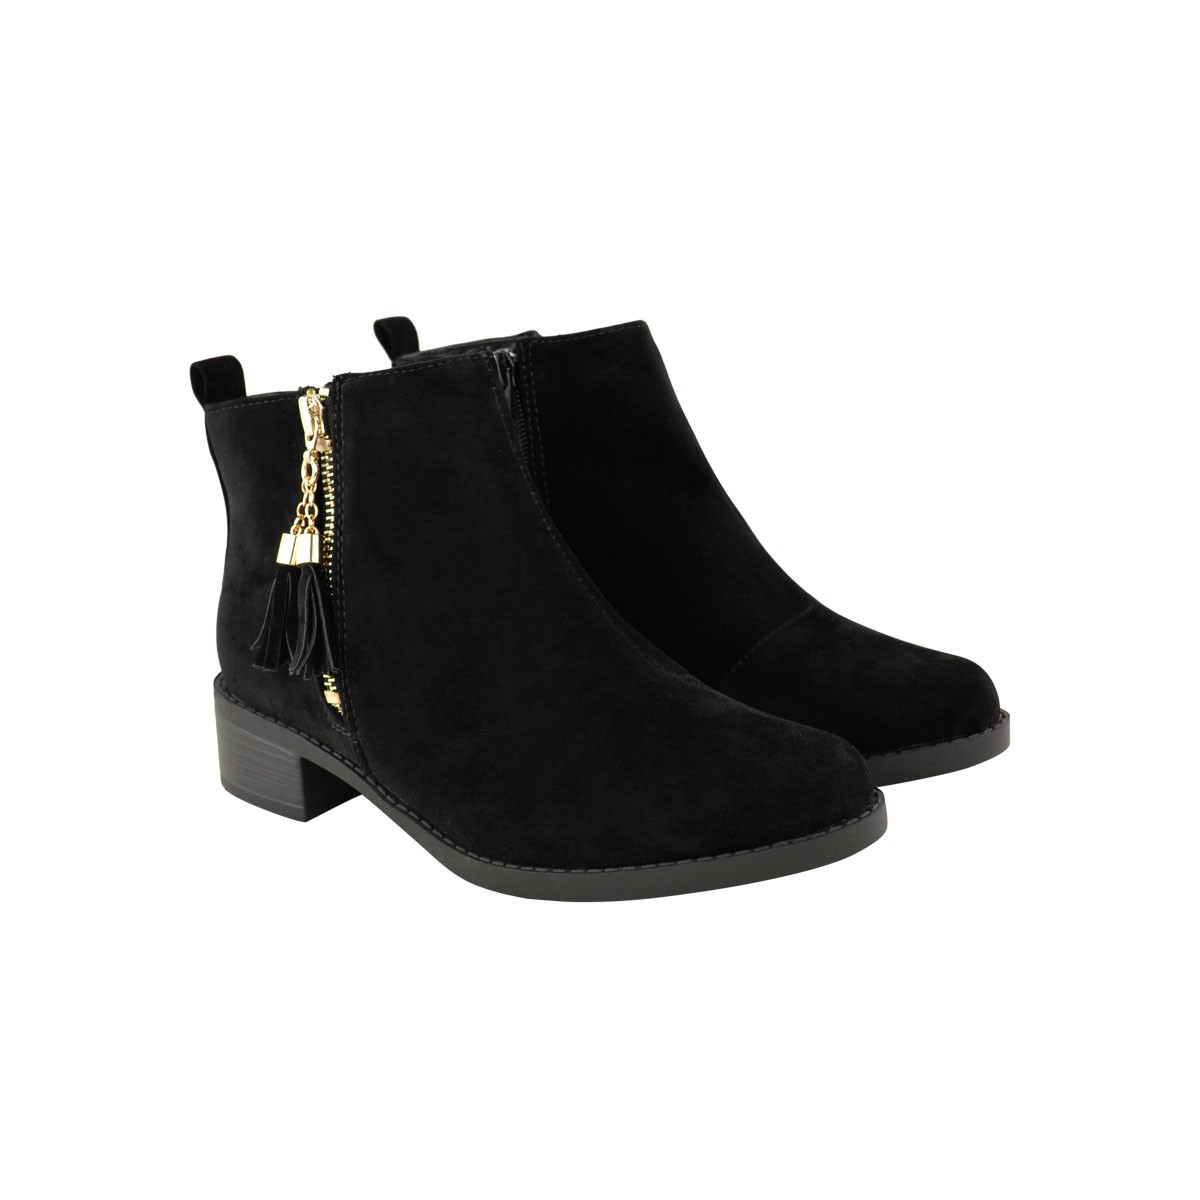 Flat Suede Ankle Boots aobYNzn4